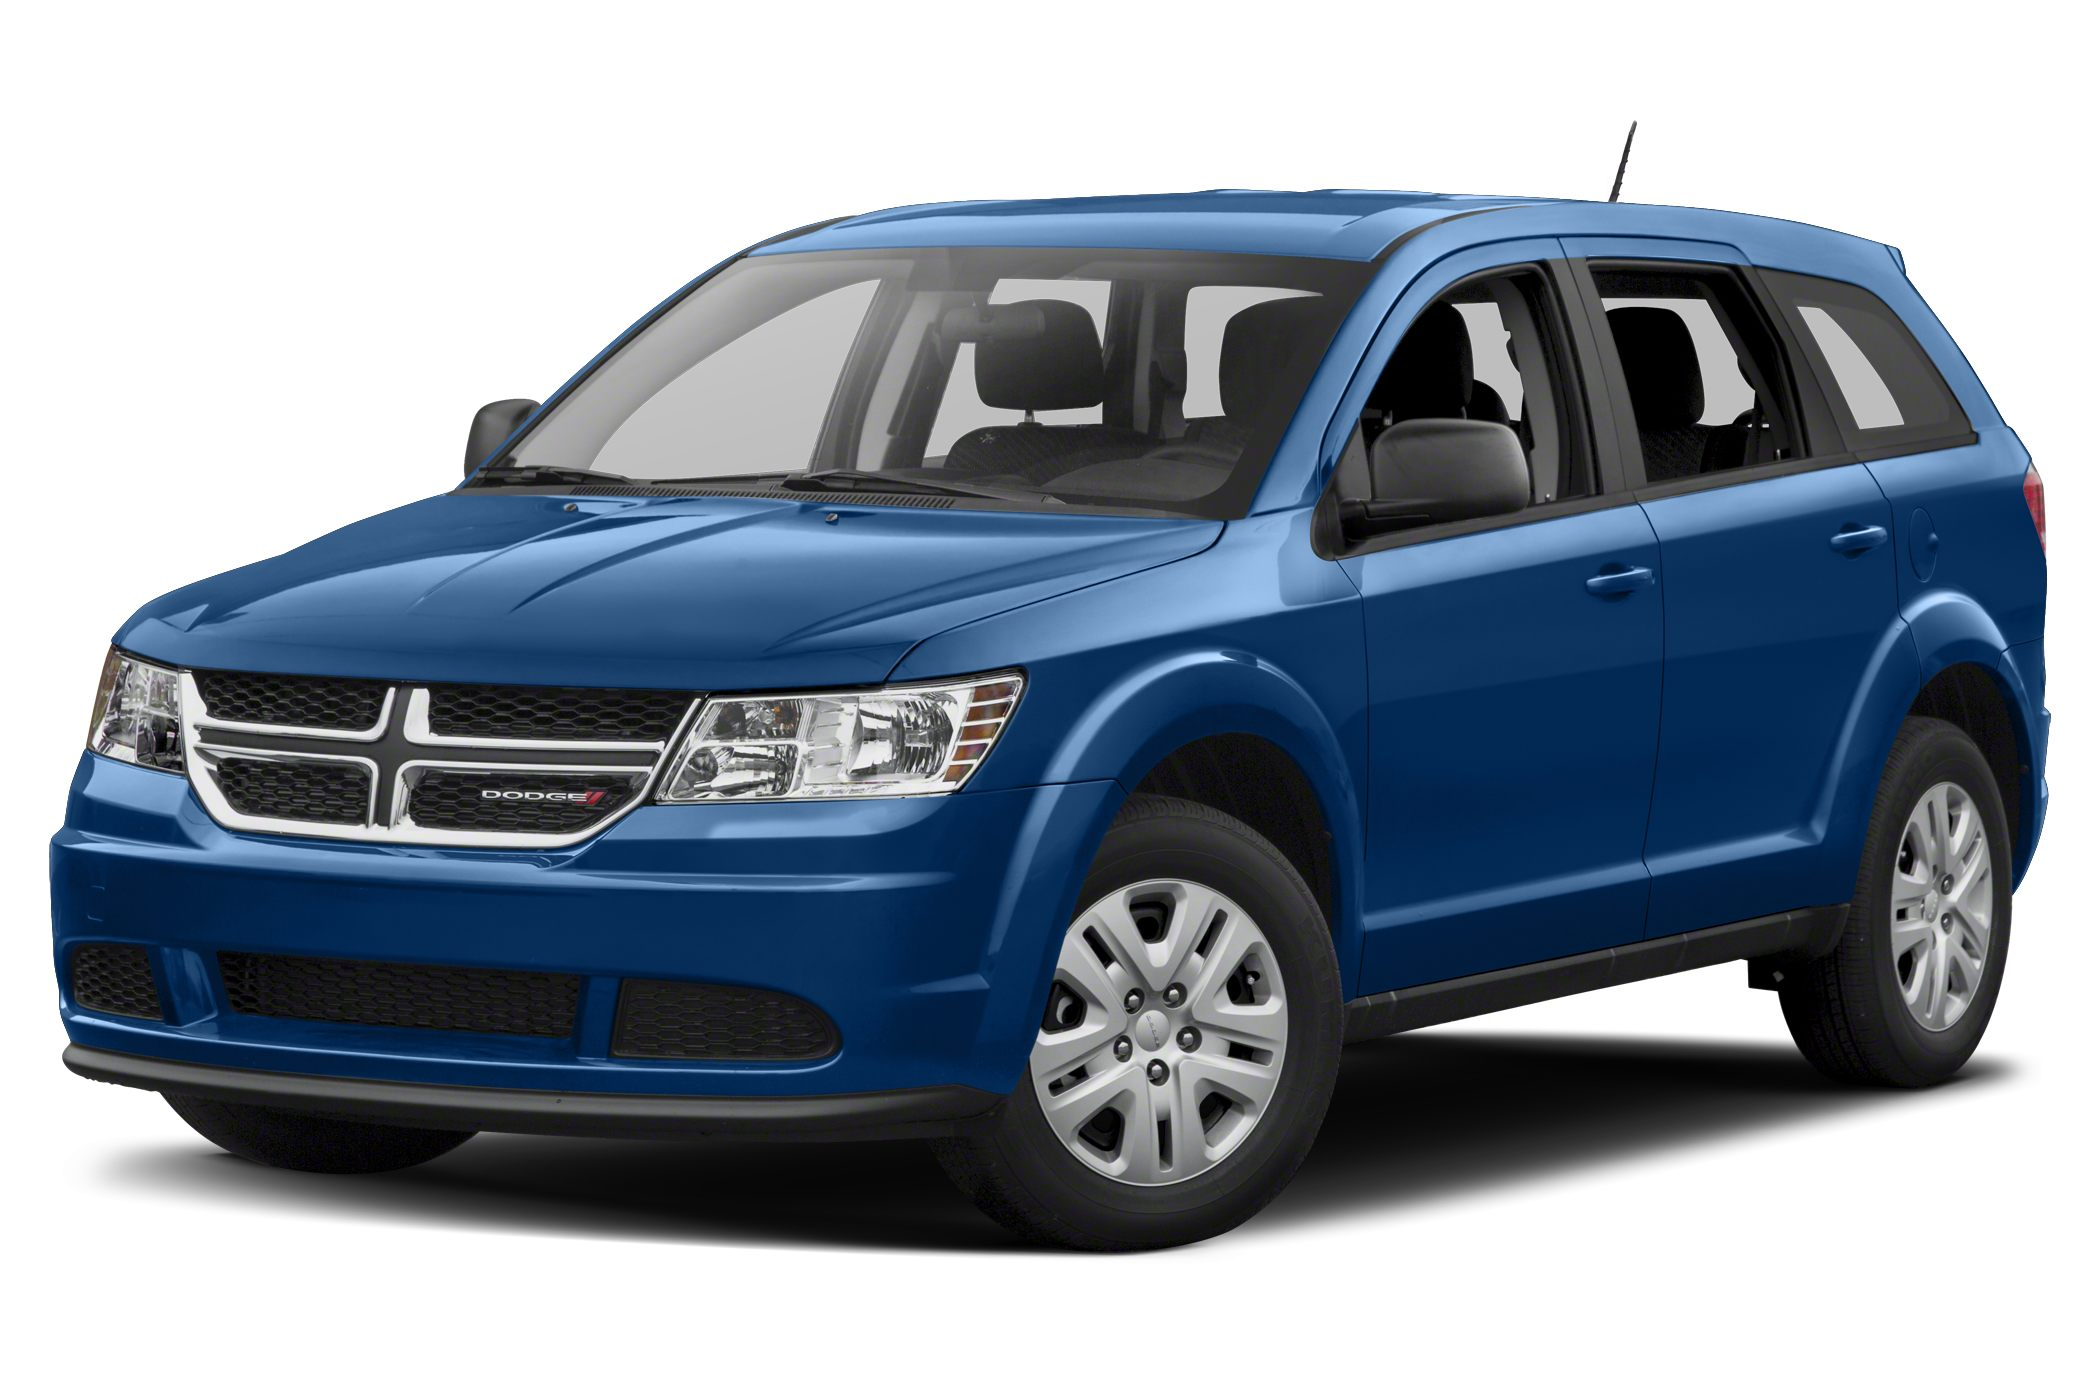 2017 Dodge Journey Pricing And Specs